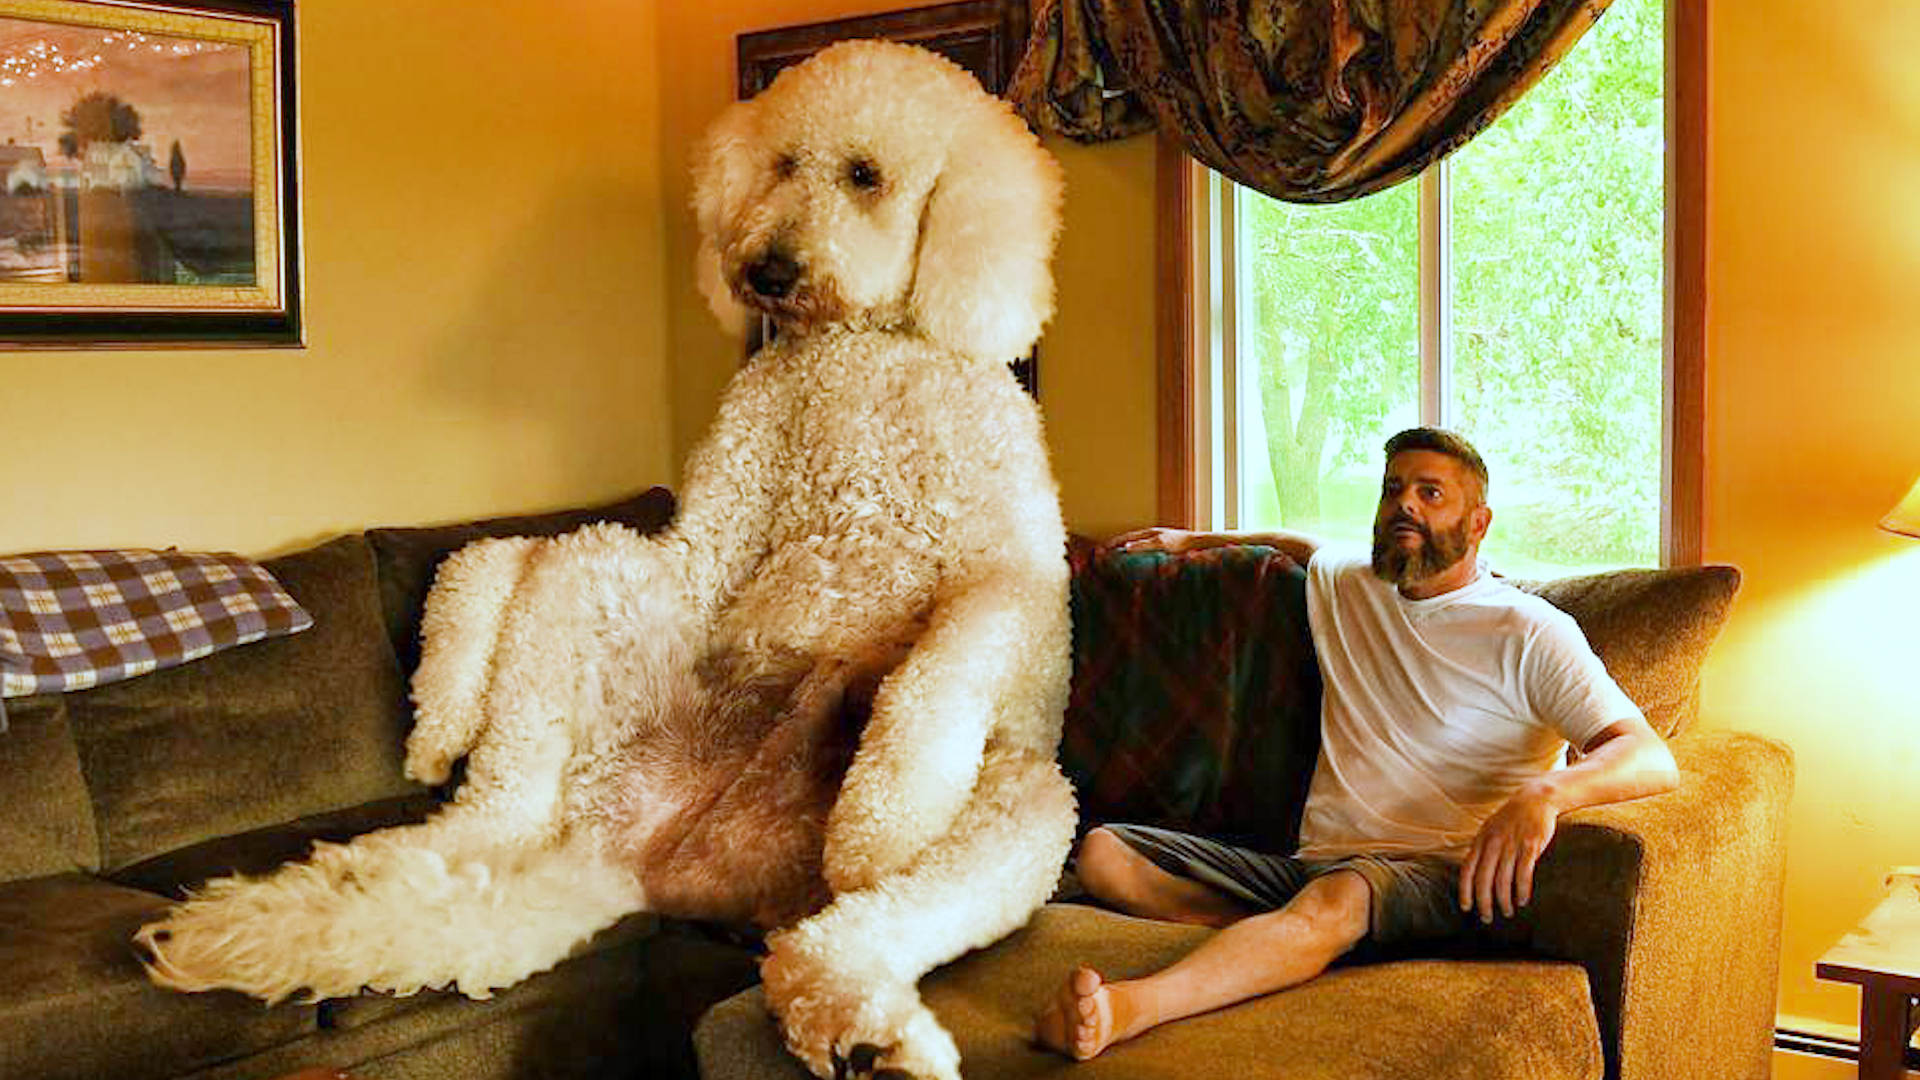 Giant Dog Weighs Over 450 Pounds